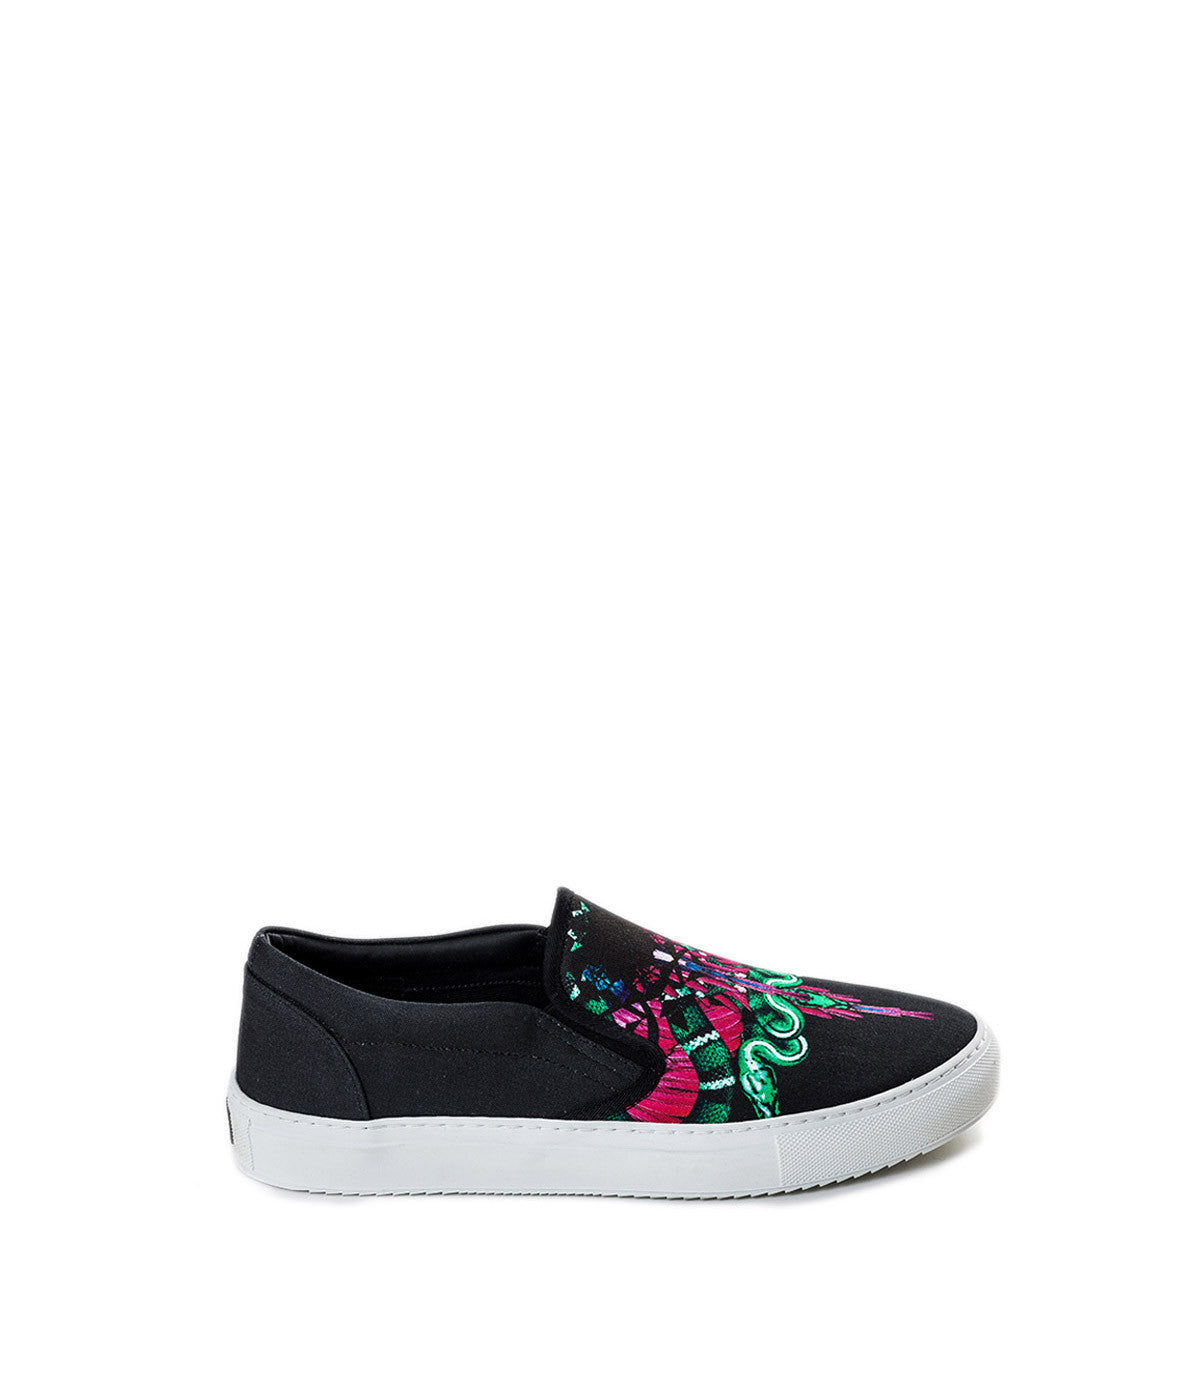 Merida Slip On Sneakers